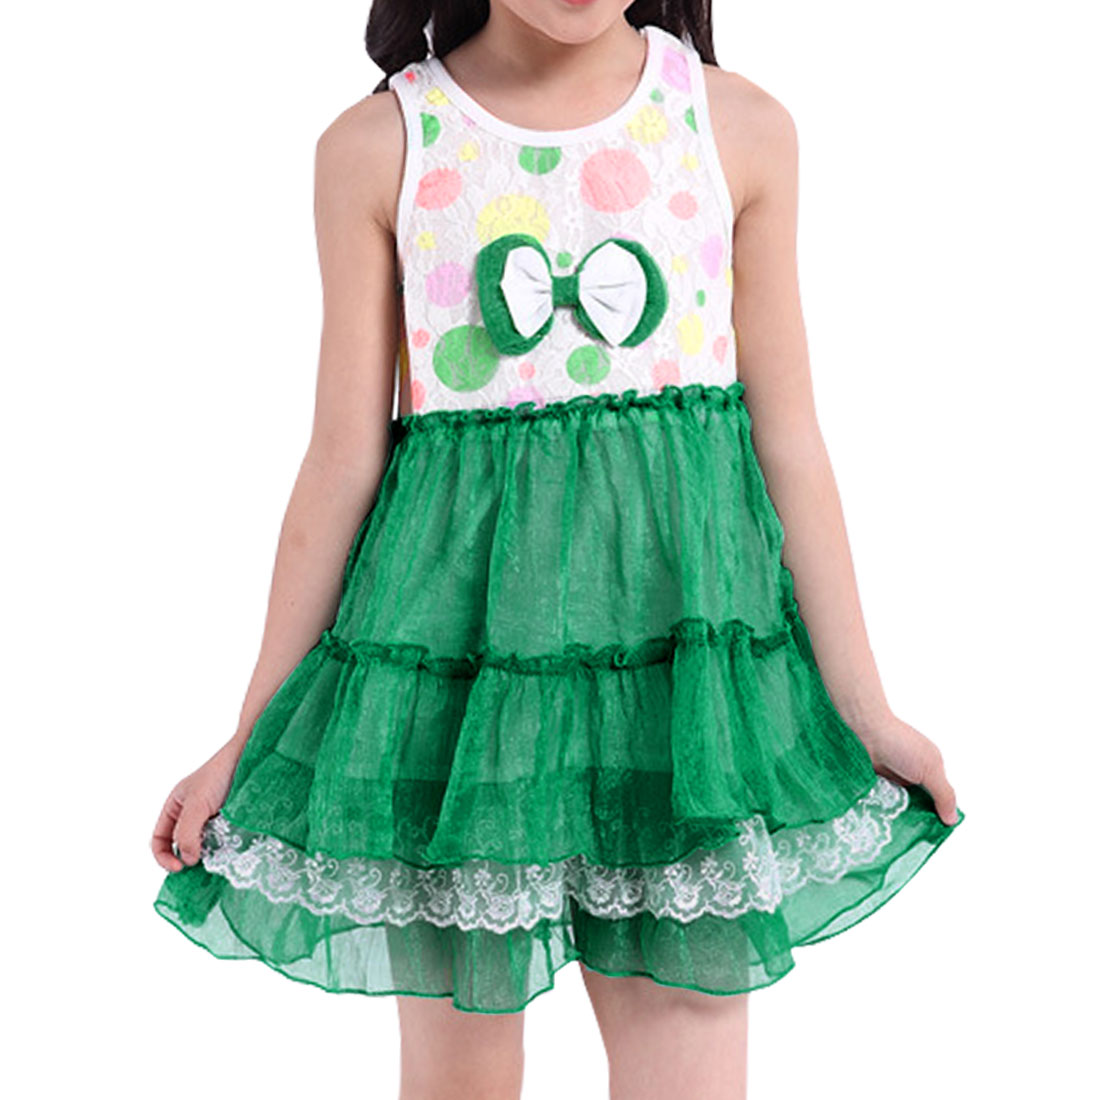 Girl Bowknot Tiered Lace Panel Casual Dress Allegra Kids Green 4